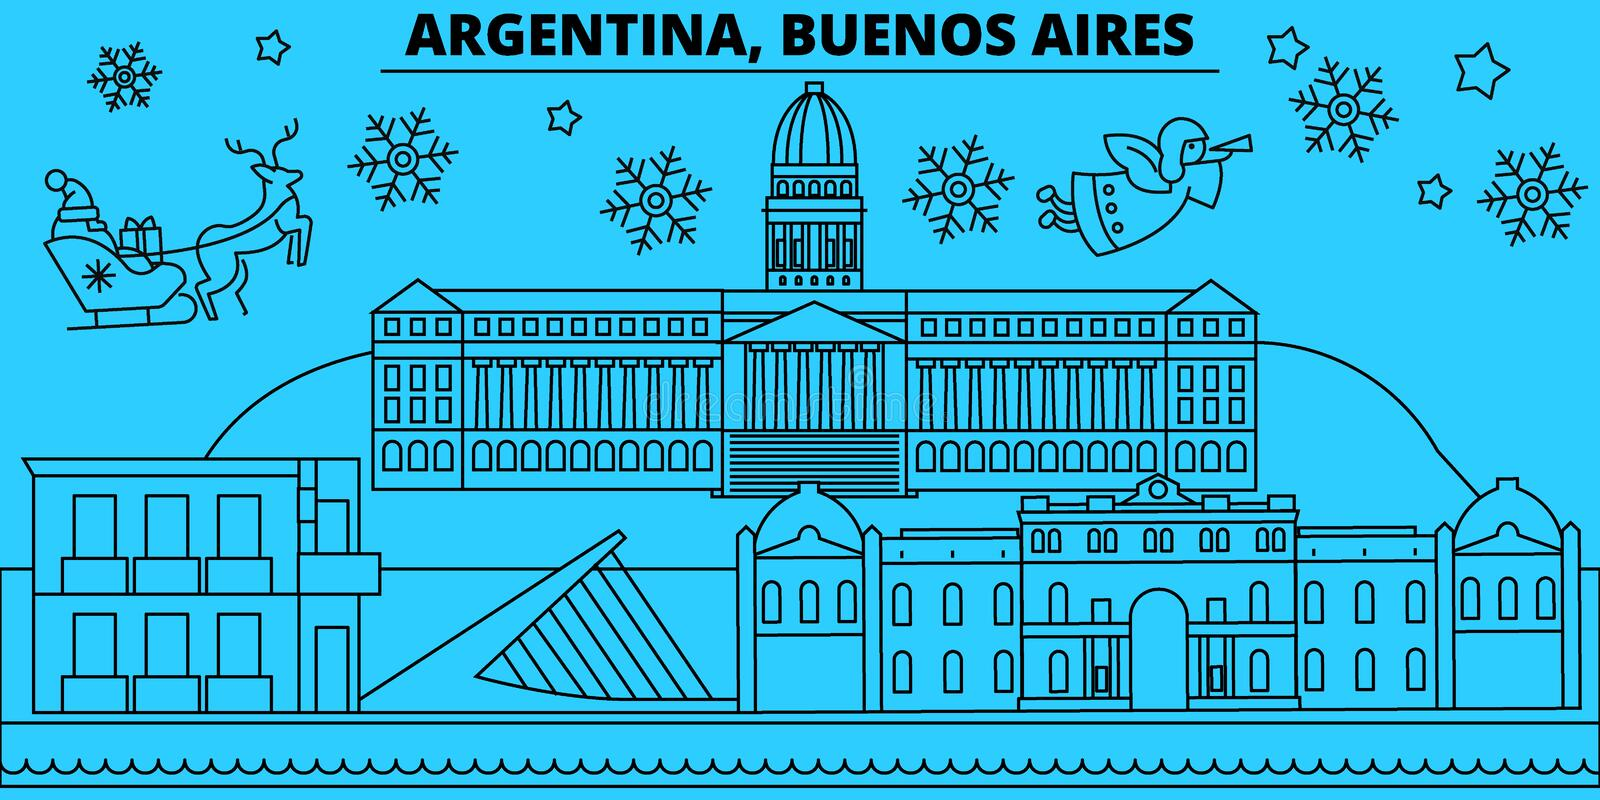 Argentina, Buenos Aeros winter holidays skyline. Merry Christmas, Happy New Year decorated banner with Santa Claus.Flat vector illustration